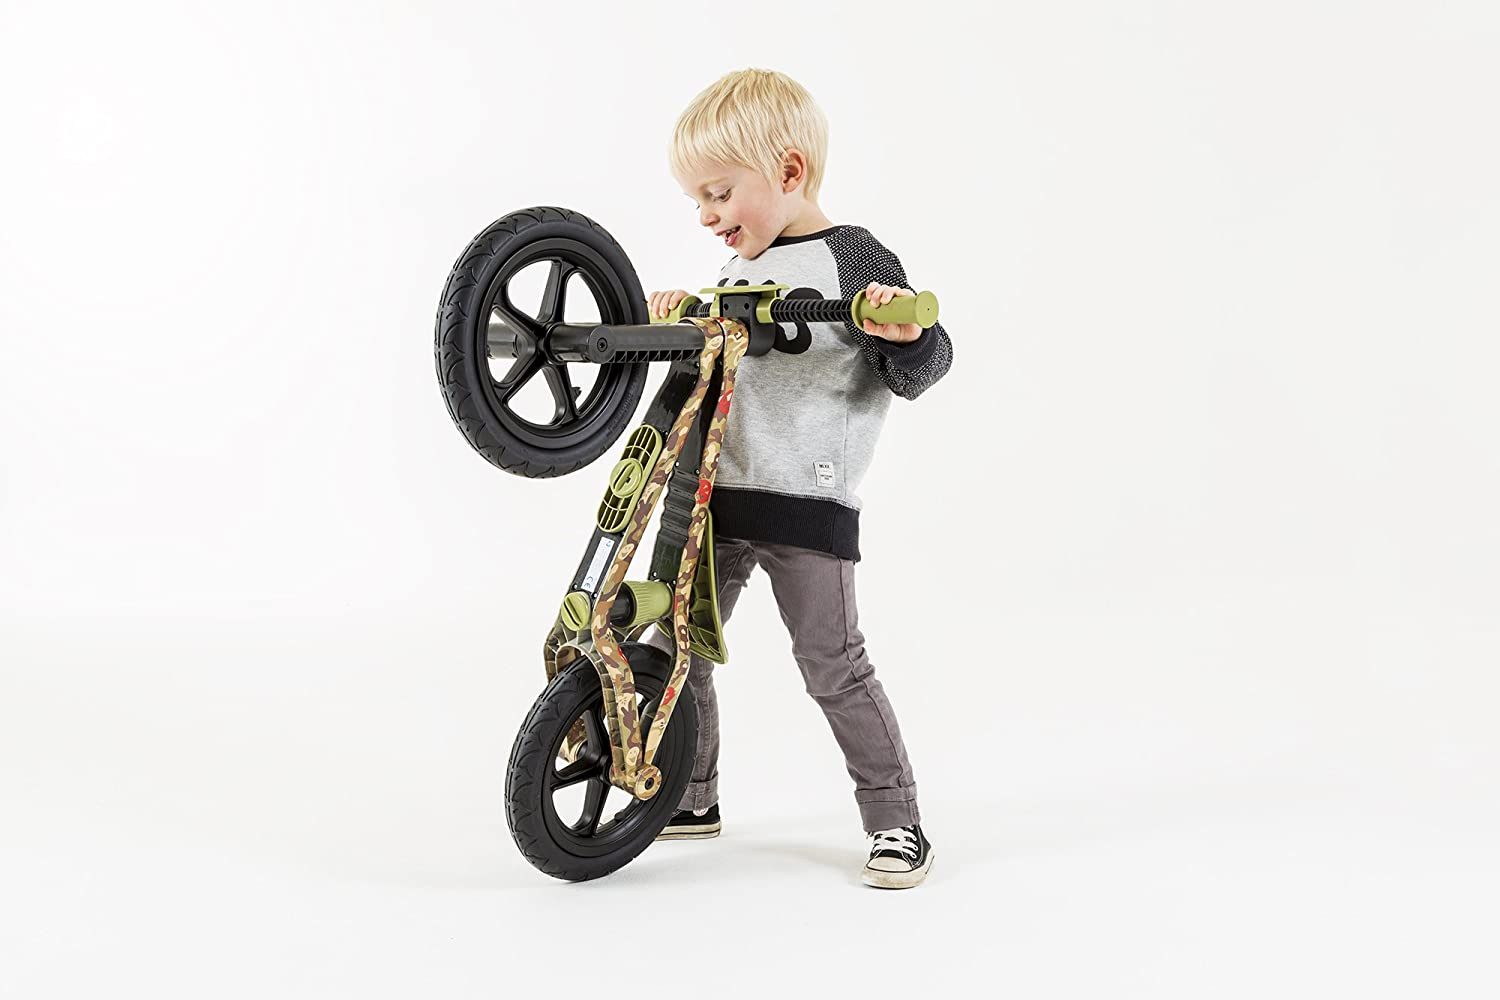 13 chillafish bmxie rs bmx balance bike with airless rubberskin tires army of love edition. Black Bedroom Furniture Sets. Home Design Ideas